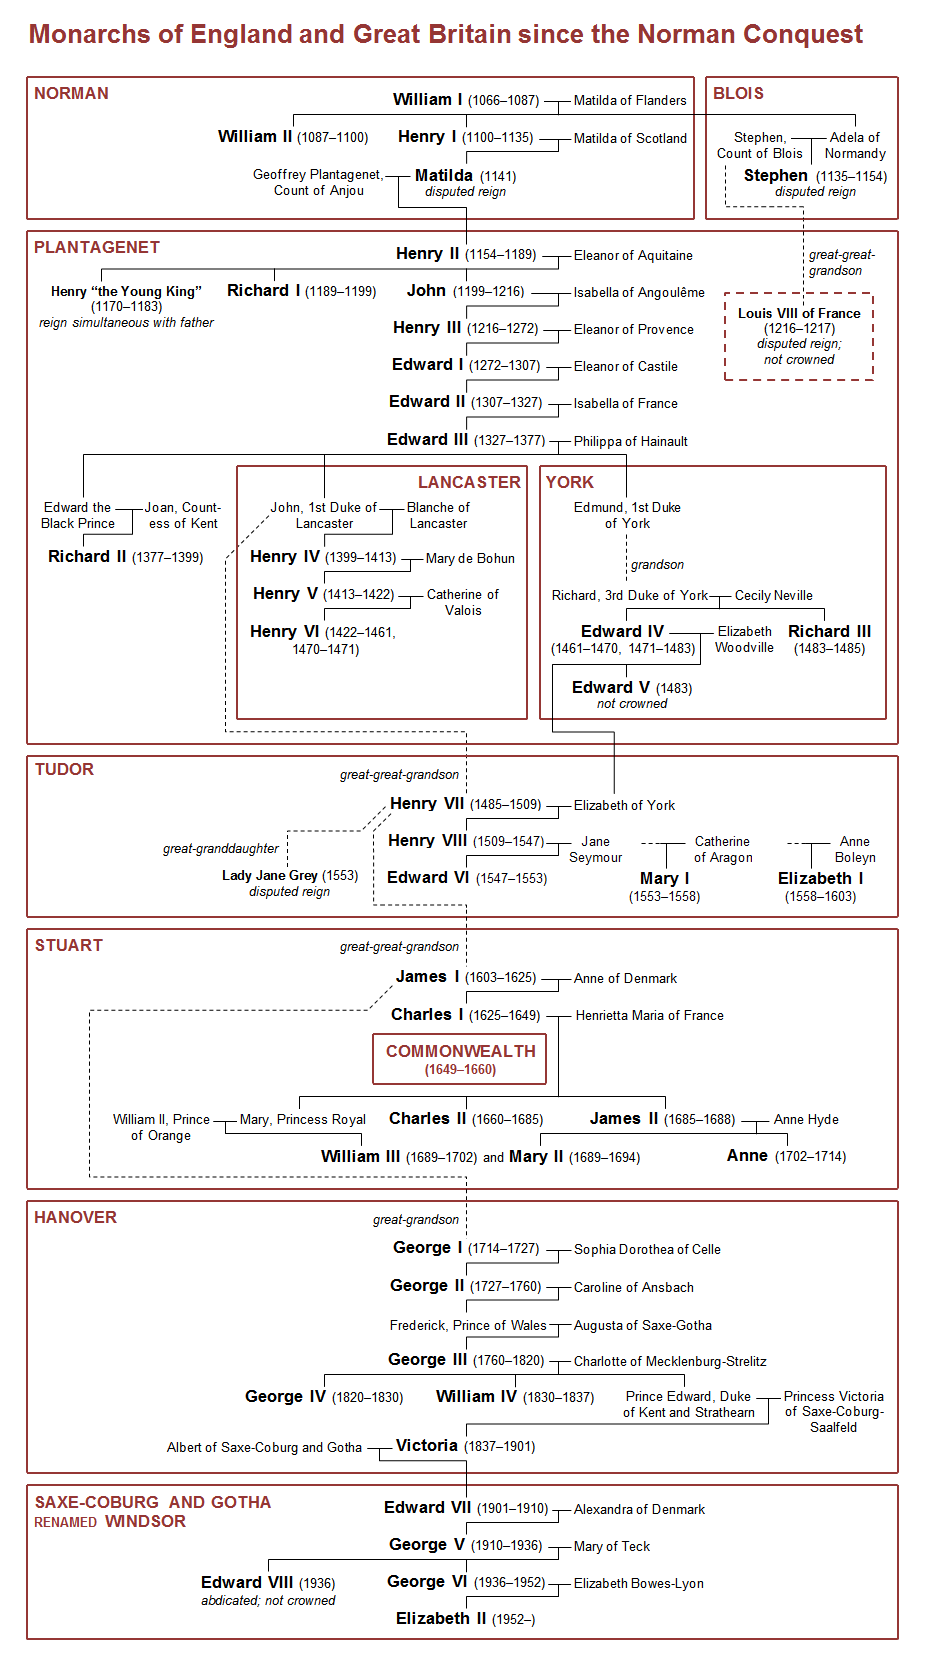 Family tree of monarchs of England and Great Britain since the ...